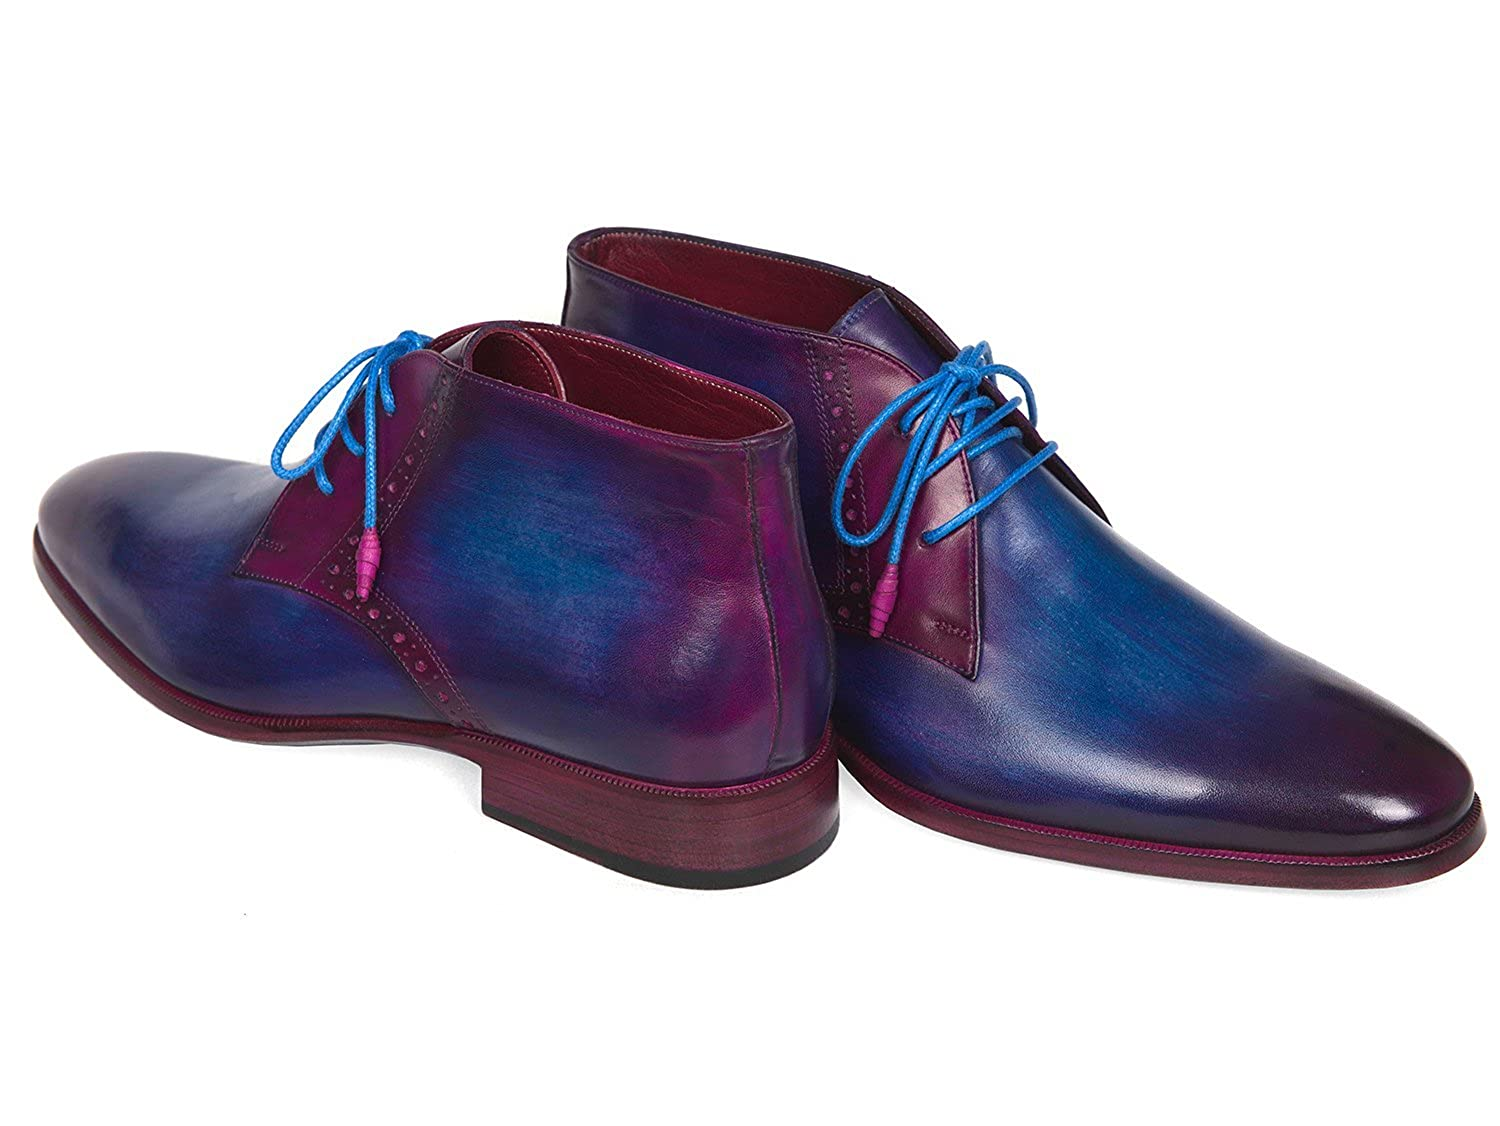 549c44cd42a75 Amazon.com | Paul Parkman Men's Chukka Boots Blue & Purple Shoes (ID ...